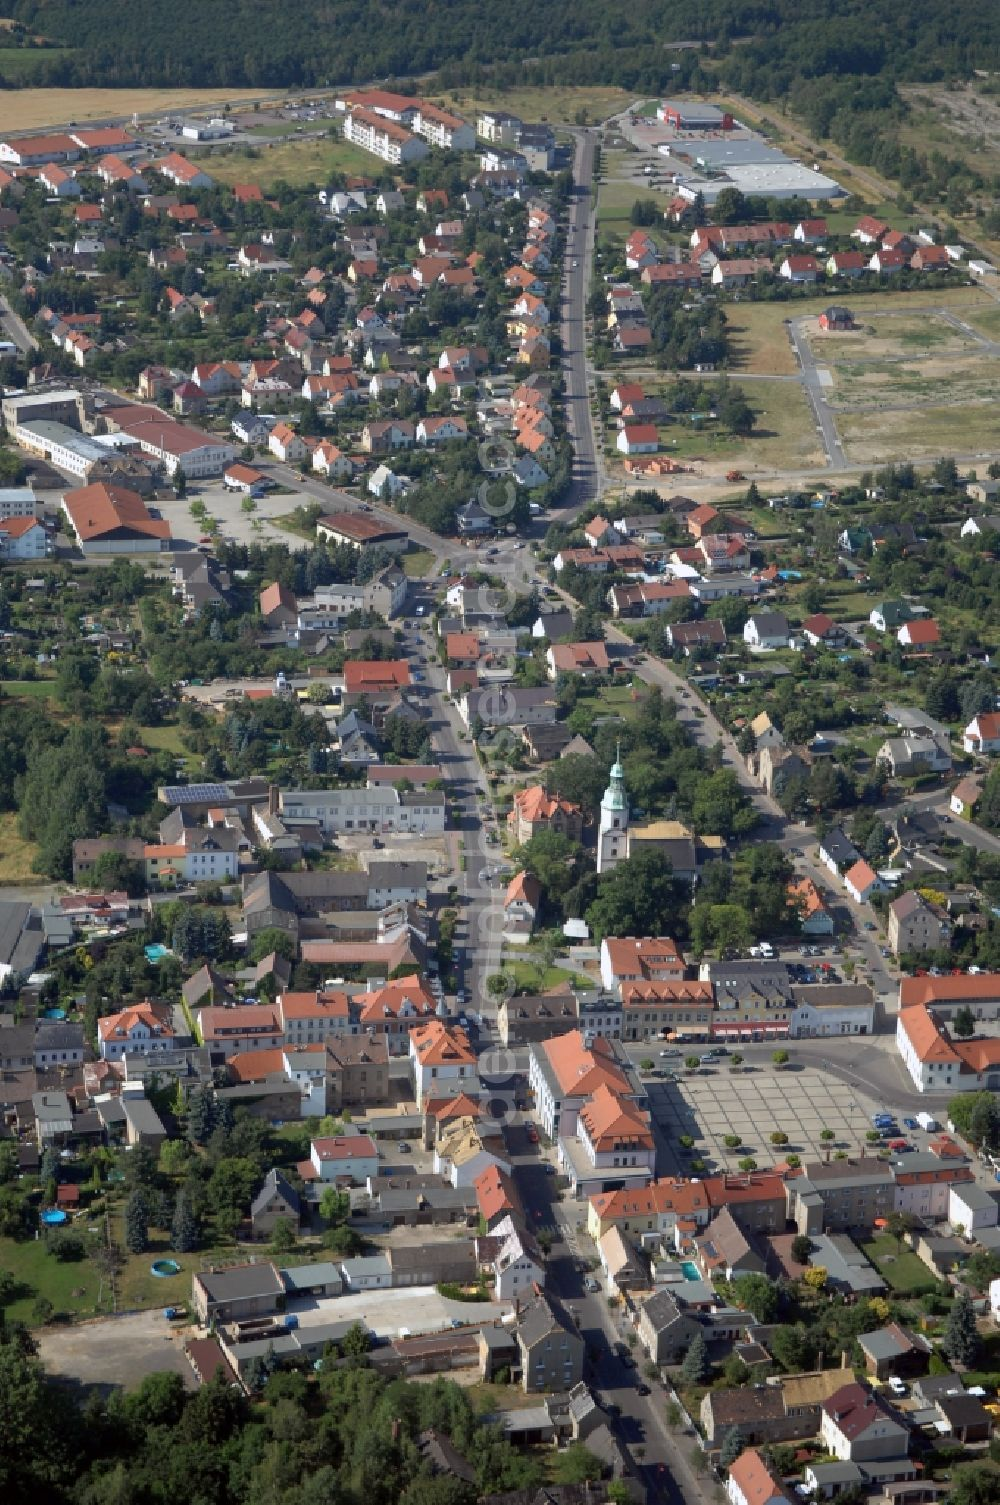 Aerial image Naunhof - City view on down town in Naunhof in the state Saxony, Germany